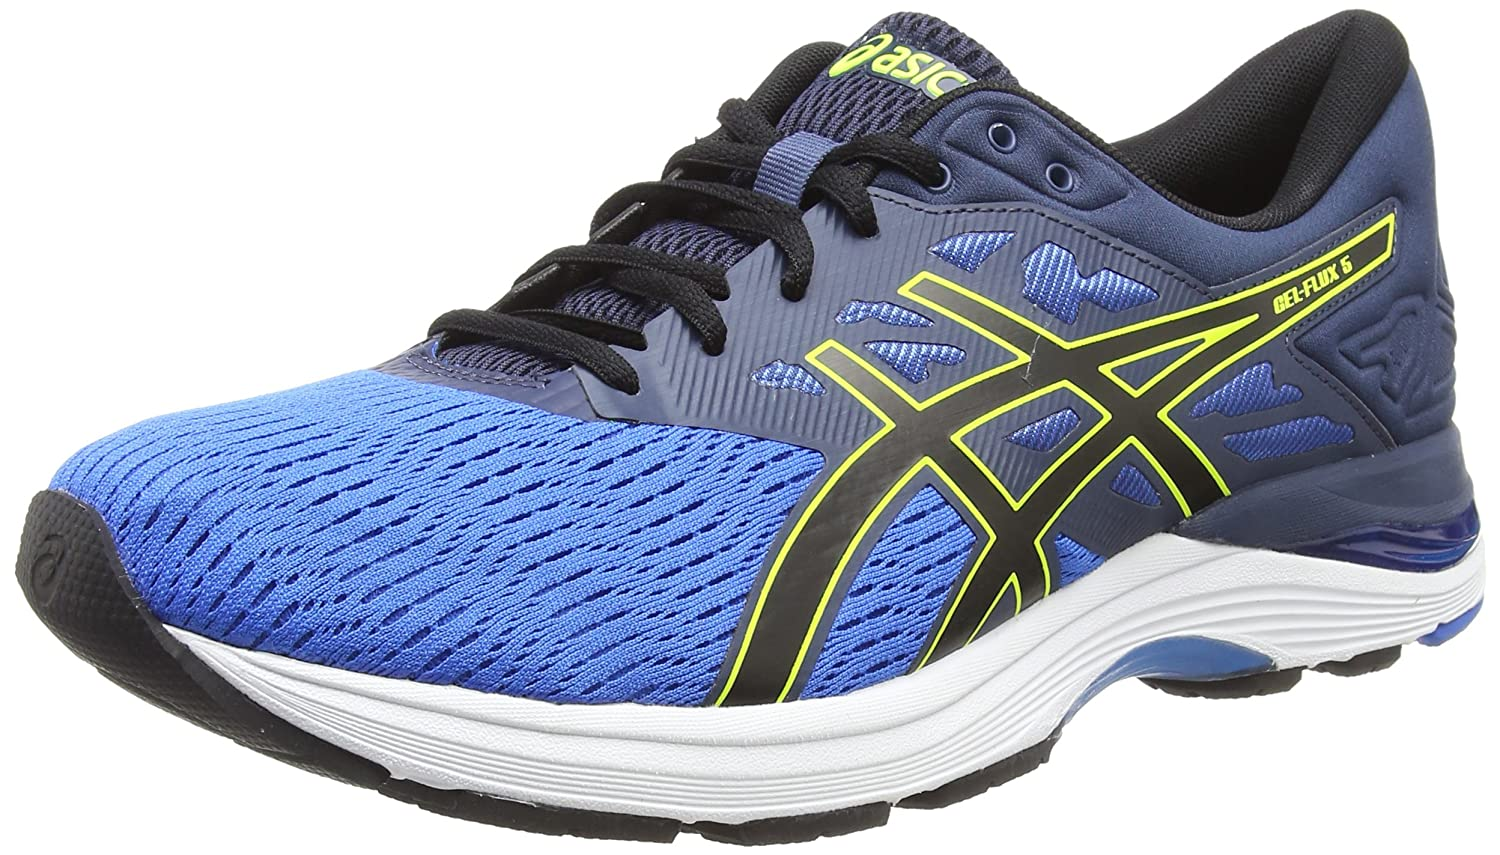 ASICS Gel-Flux 5, Chaussures de Homme Running Homme de 43.5 EU|Multicolore (Directoire Blue/Black/Safety Yellow 4390) cb48c9